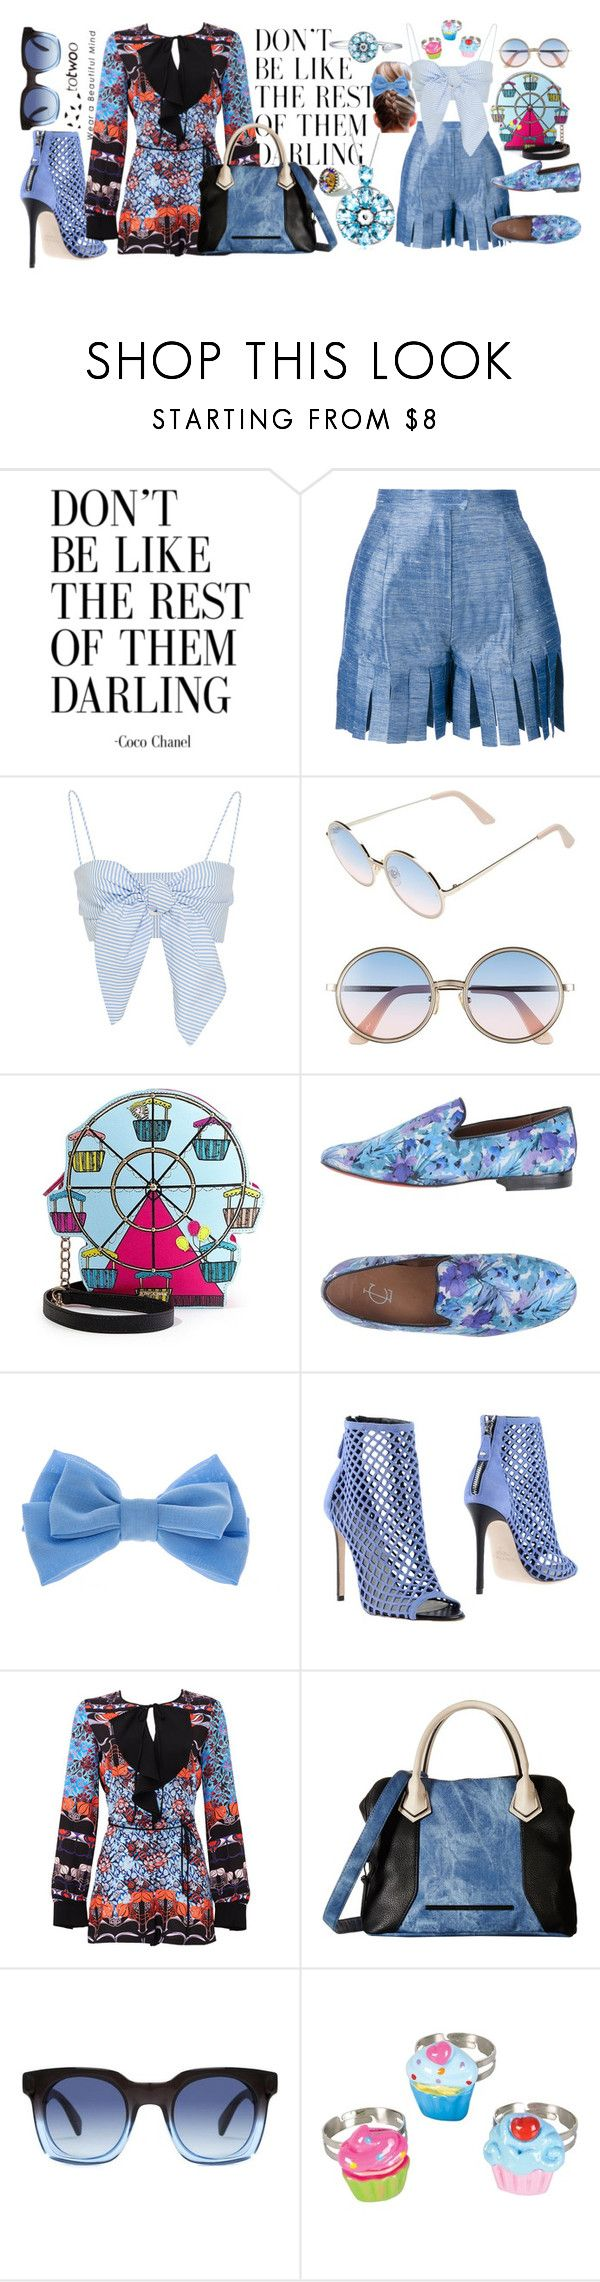 """""""Weekday Blues"""" by styleonapinch on Polyvore featuring Tata Naka, Sunday Somewhere, Betsey Johnson, Communication Love, claire's, Grey Mer, Clover Canyon, Steve Madden, Marc by Marc Jacobs and Eclectic Eccentricity"""